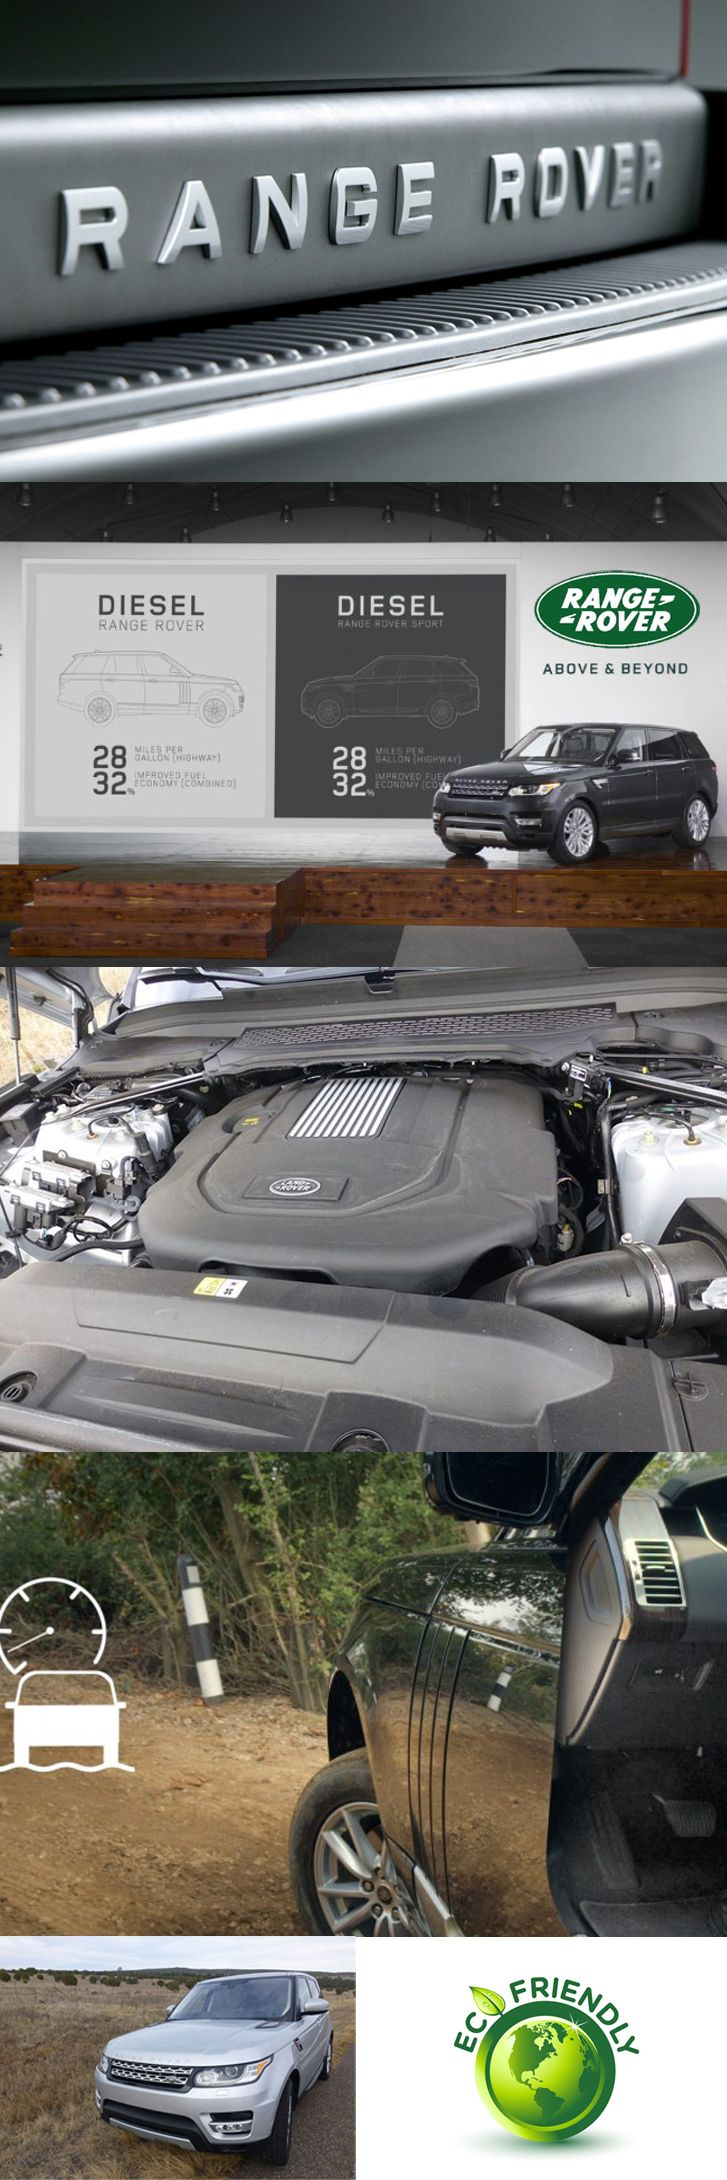 range rovers big gamble on diesels for more detail http